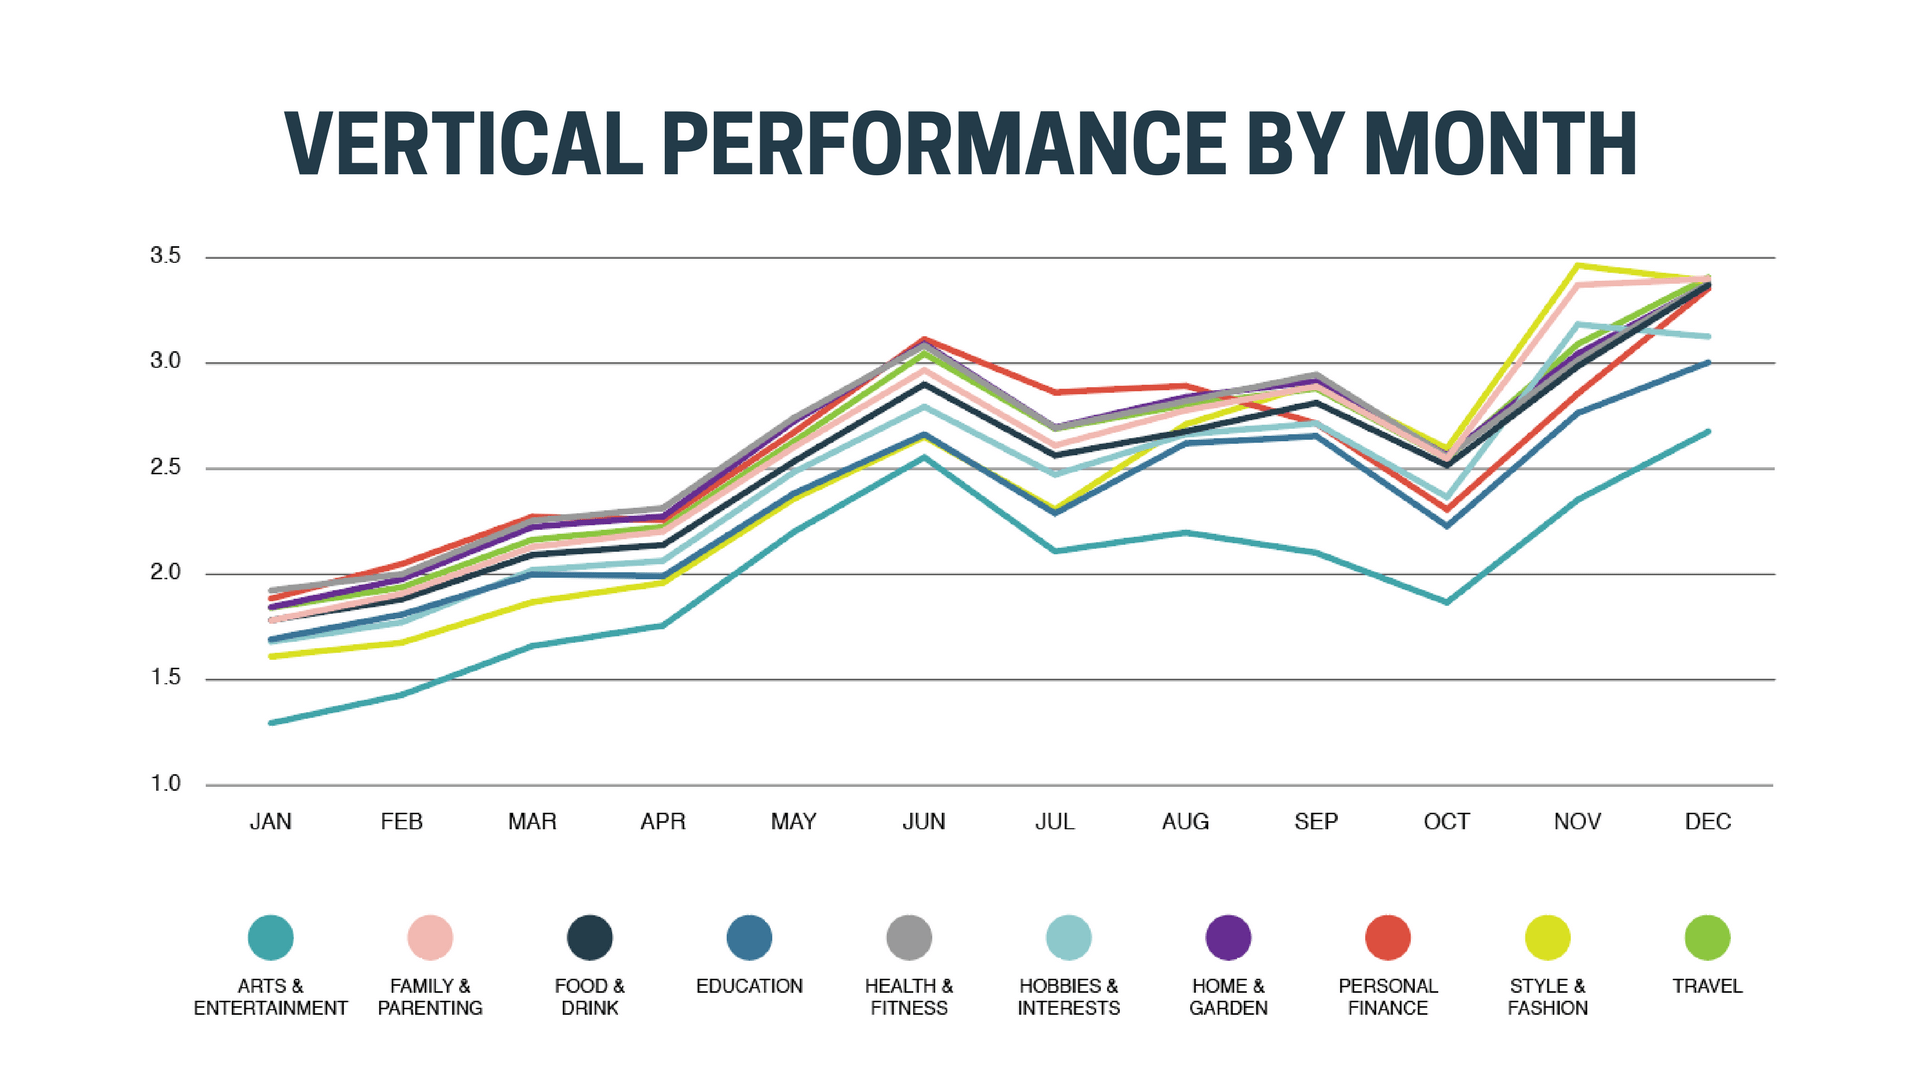 Vertical performance by month graph, with upward trend.